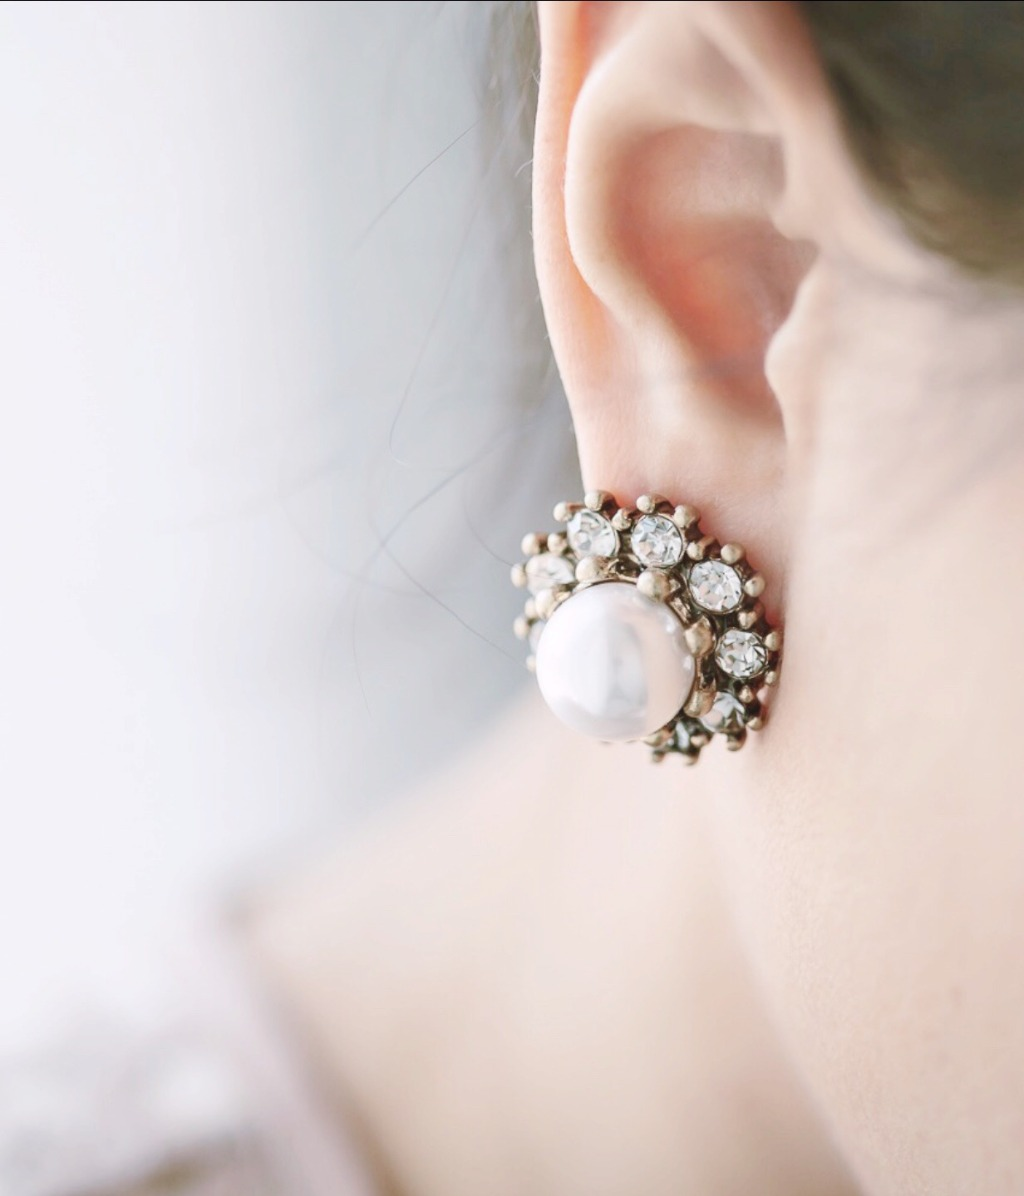 The Evelyn Pearl Stud Earrings feature a large pearl surrounded by sparkling crystals. These vintage style pearl stud wedding earrings